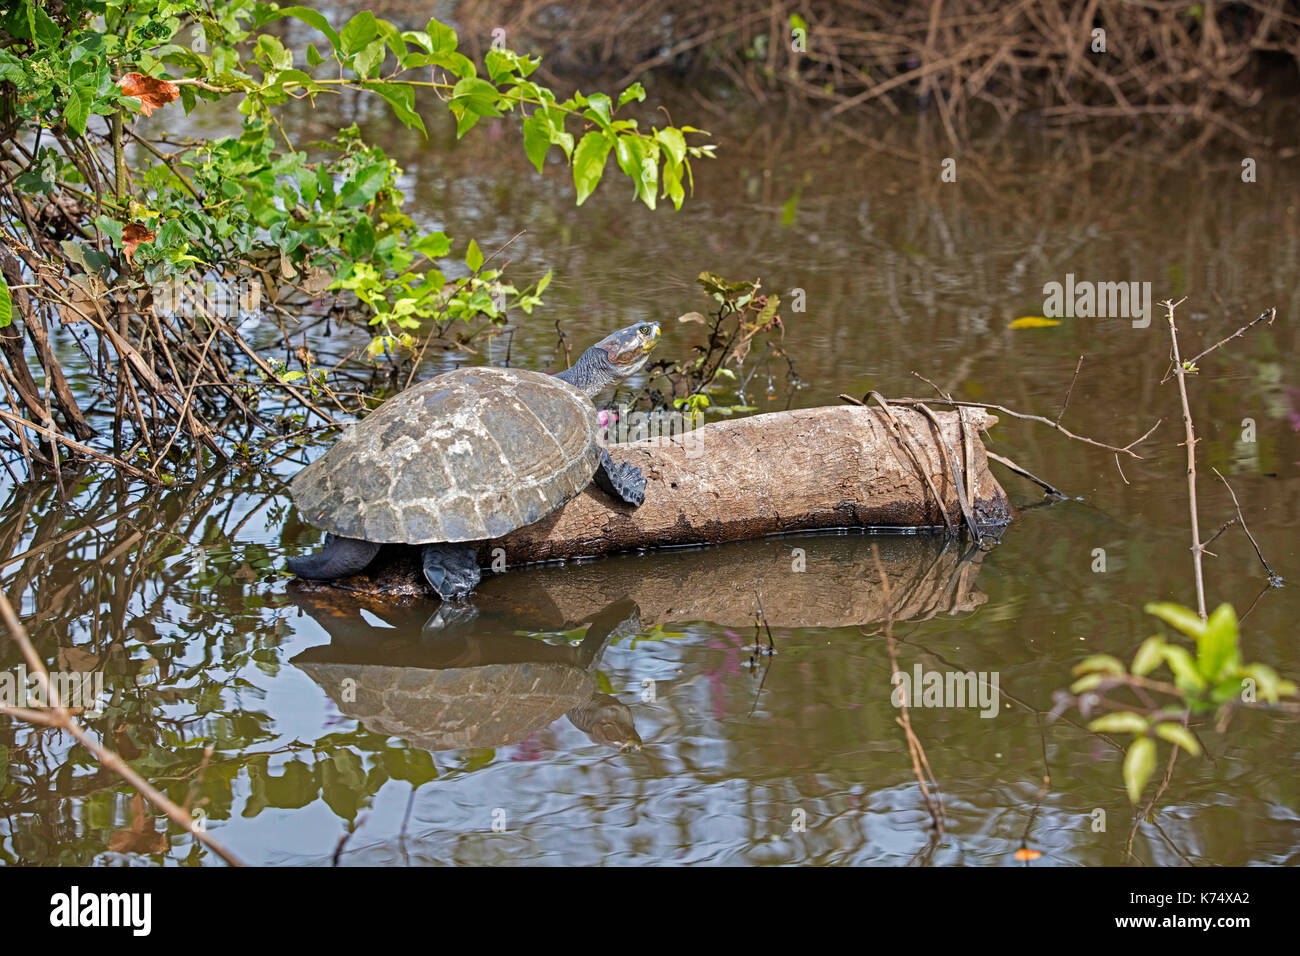 Yellow-spotted Amazon river turtle / yellow-spotted river turtle (Podocnemis unifilis) resting on log in river, native to South America's Amazon Basin - Stock Image